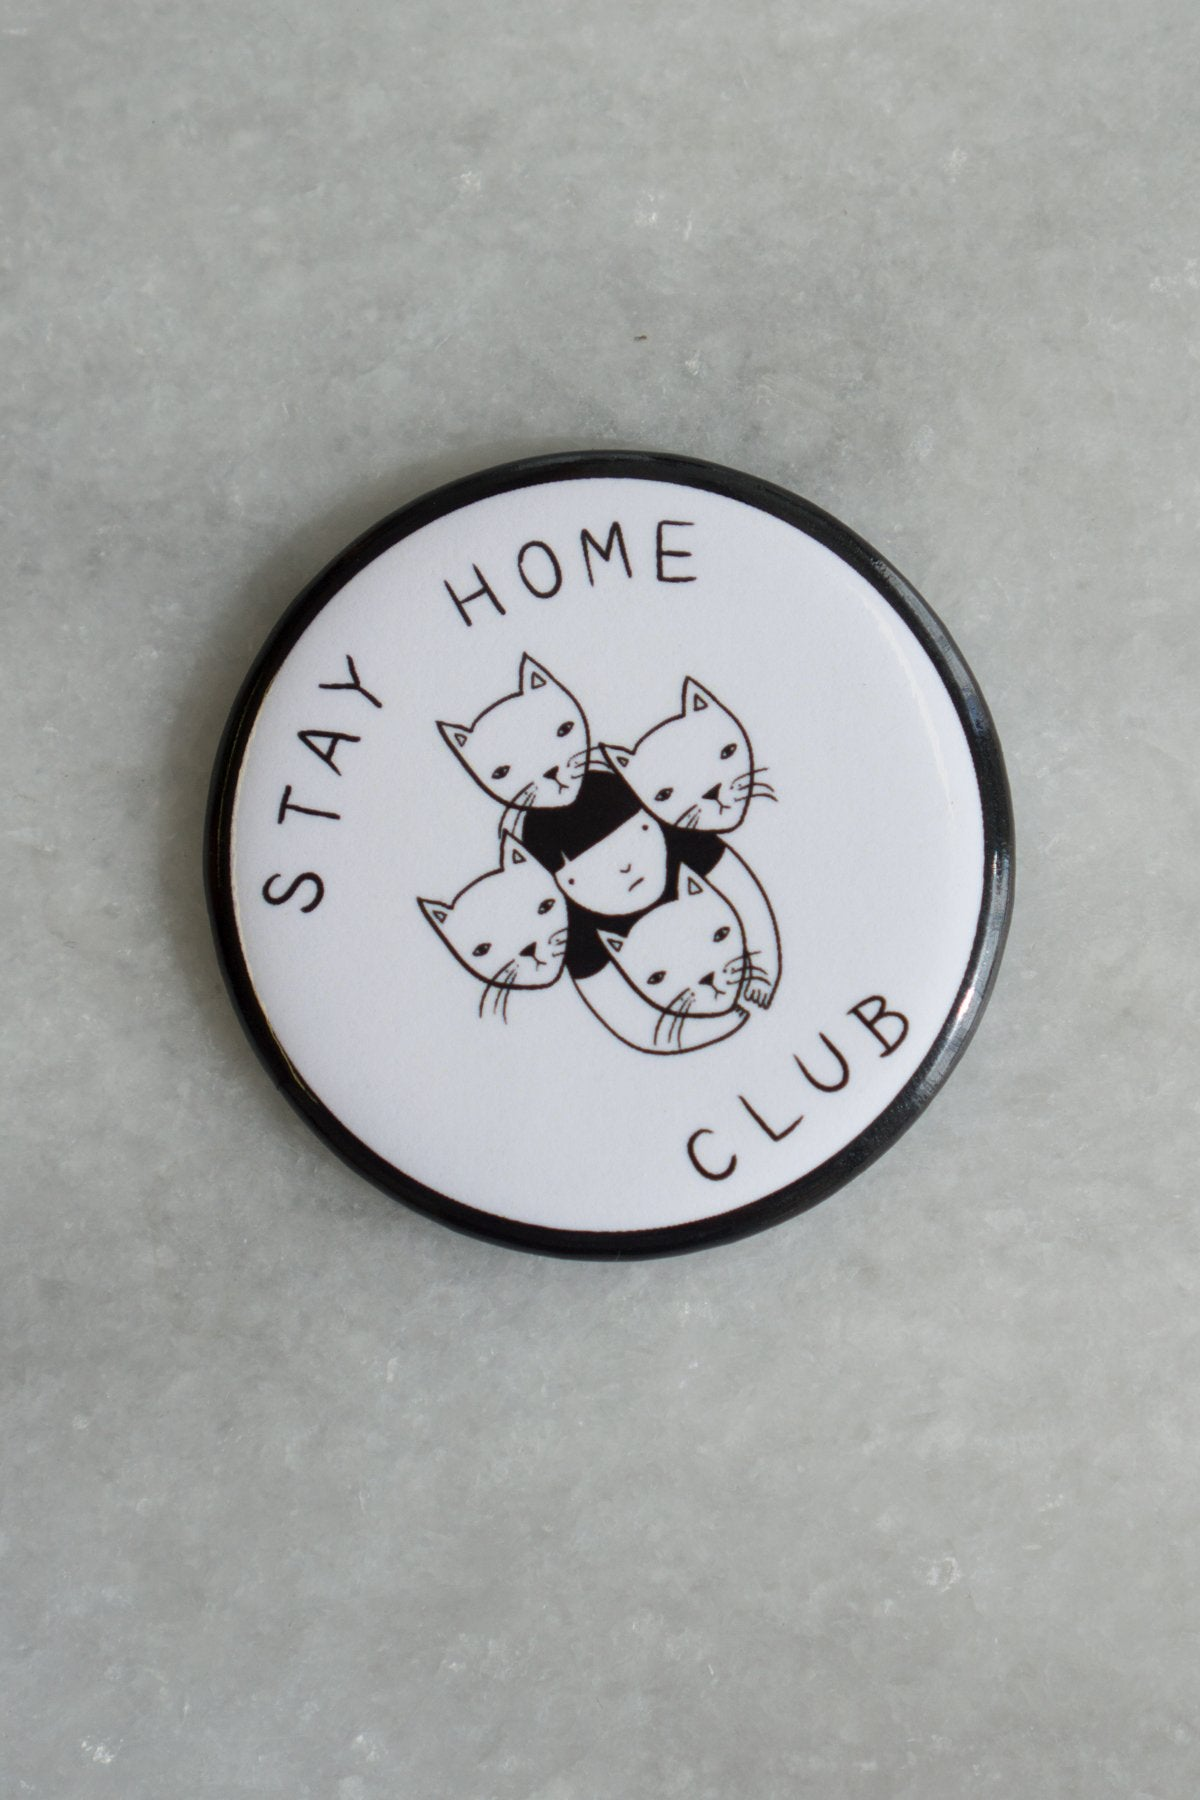 Stay Home Club Magnet